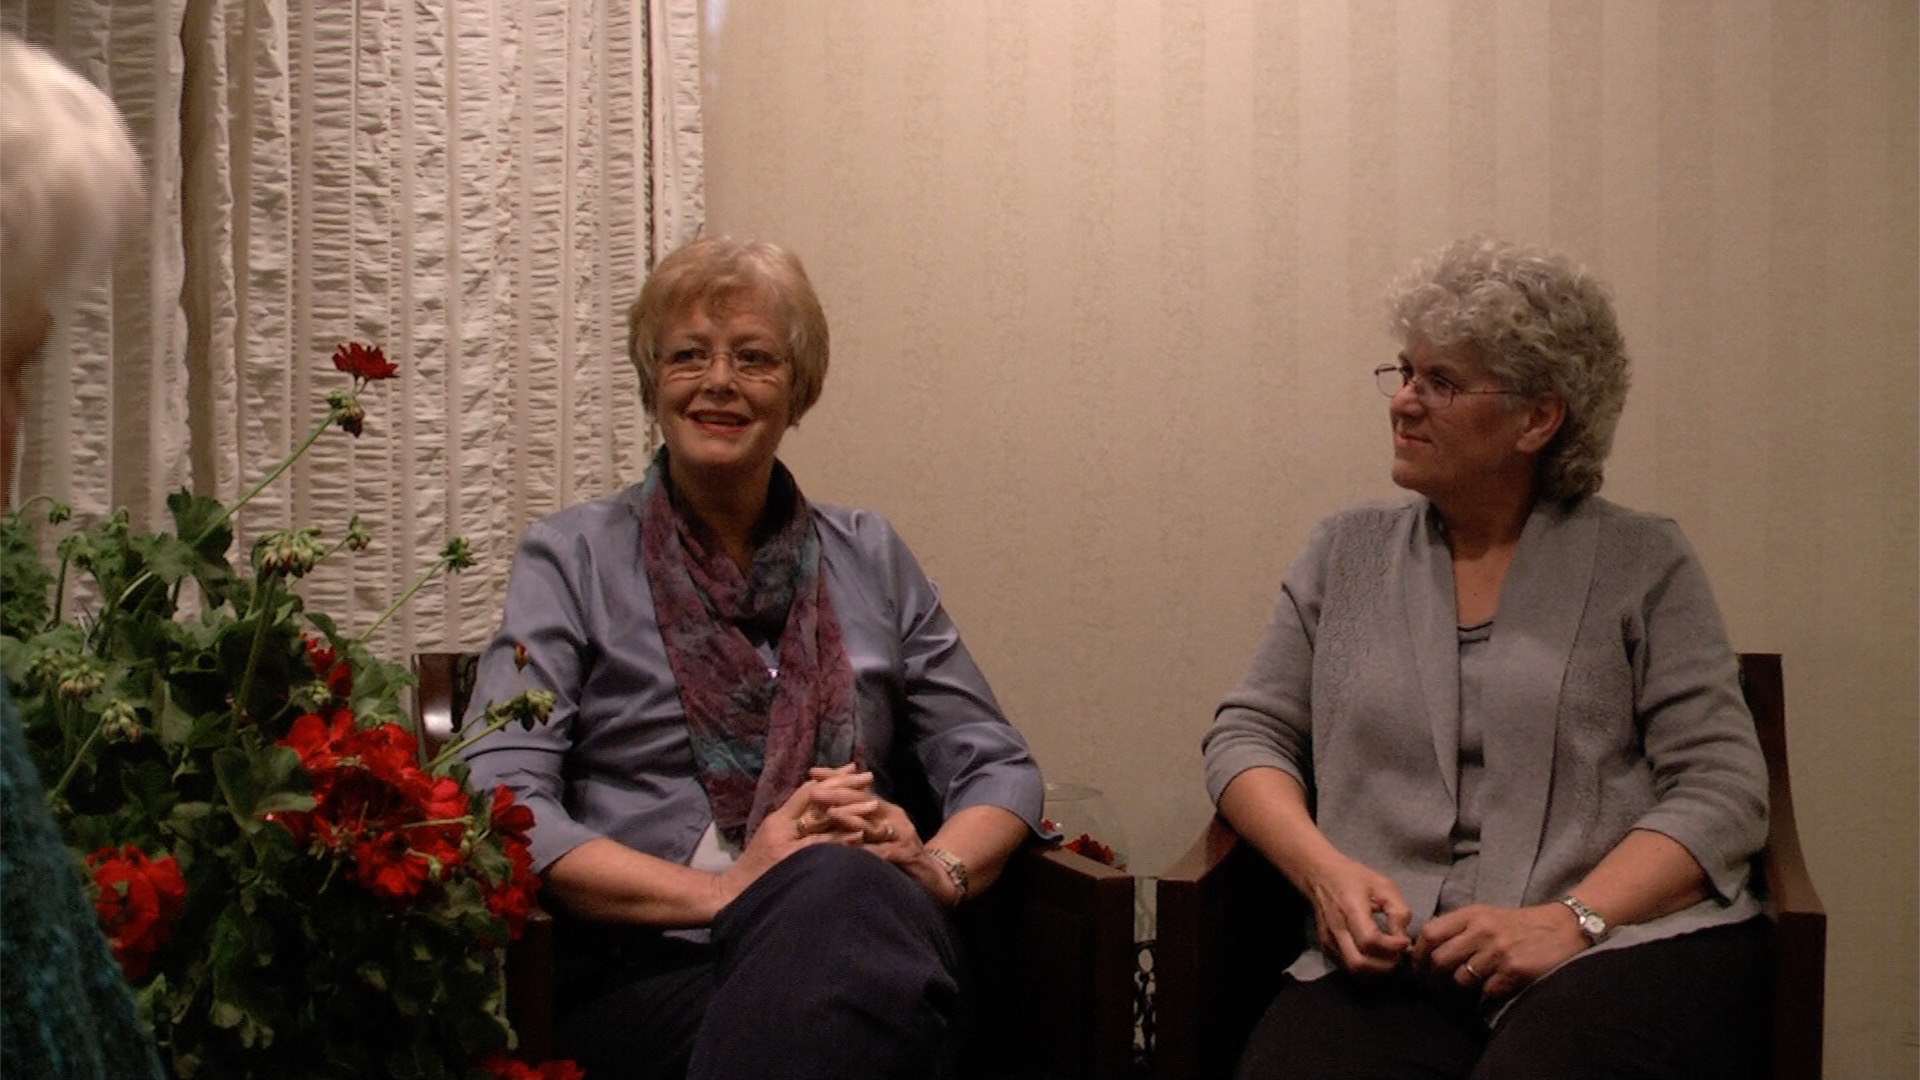 Linda Wagner and Paula Gubrud -Howe sit down with Dr. Benner